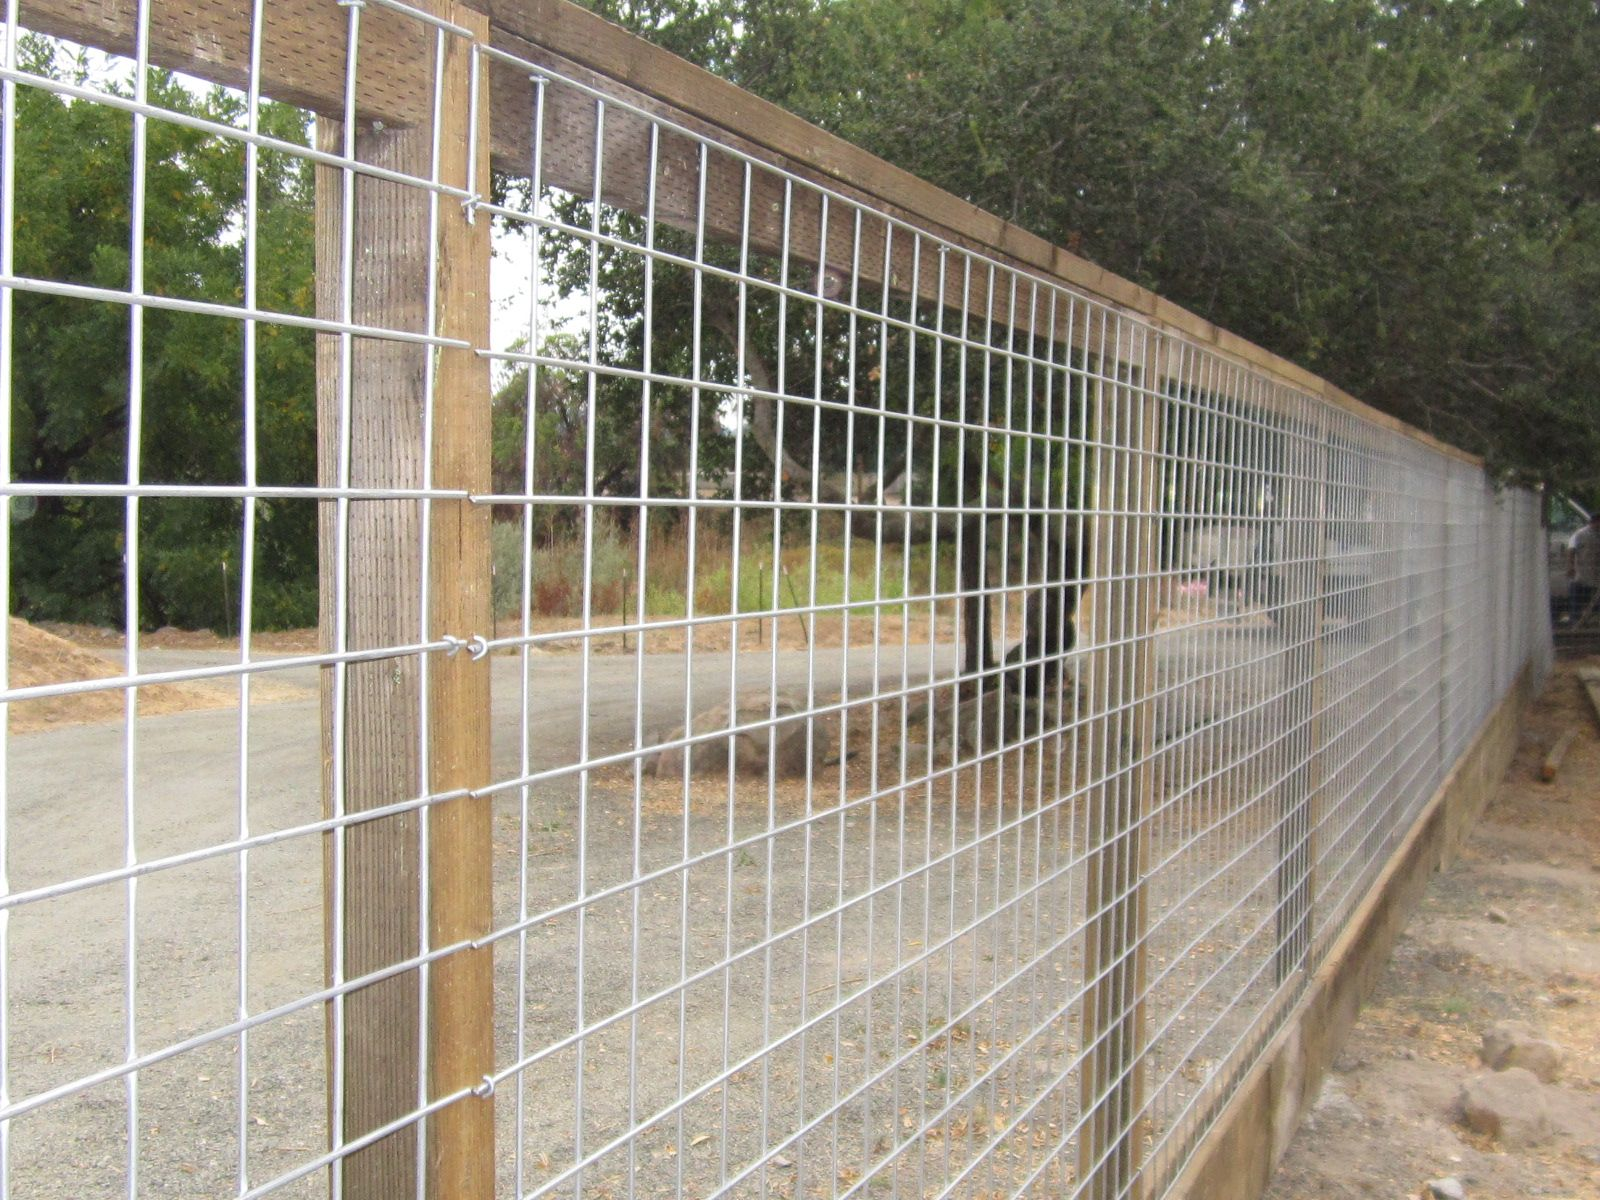 4x4 Hog Panel mesh on 4x4 posts and kickboard by Arbor Fence, Inc ...